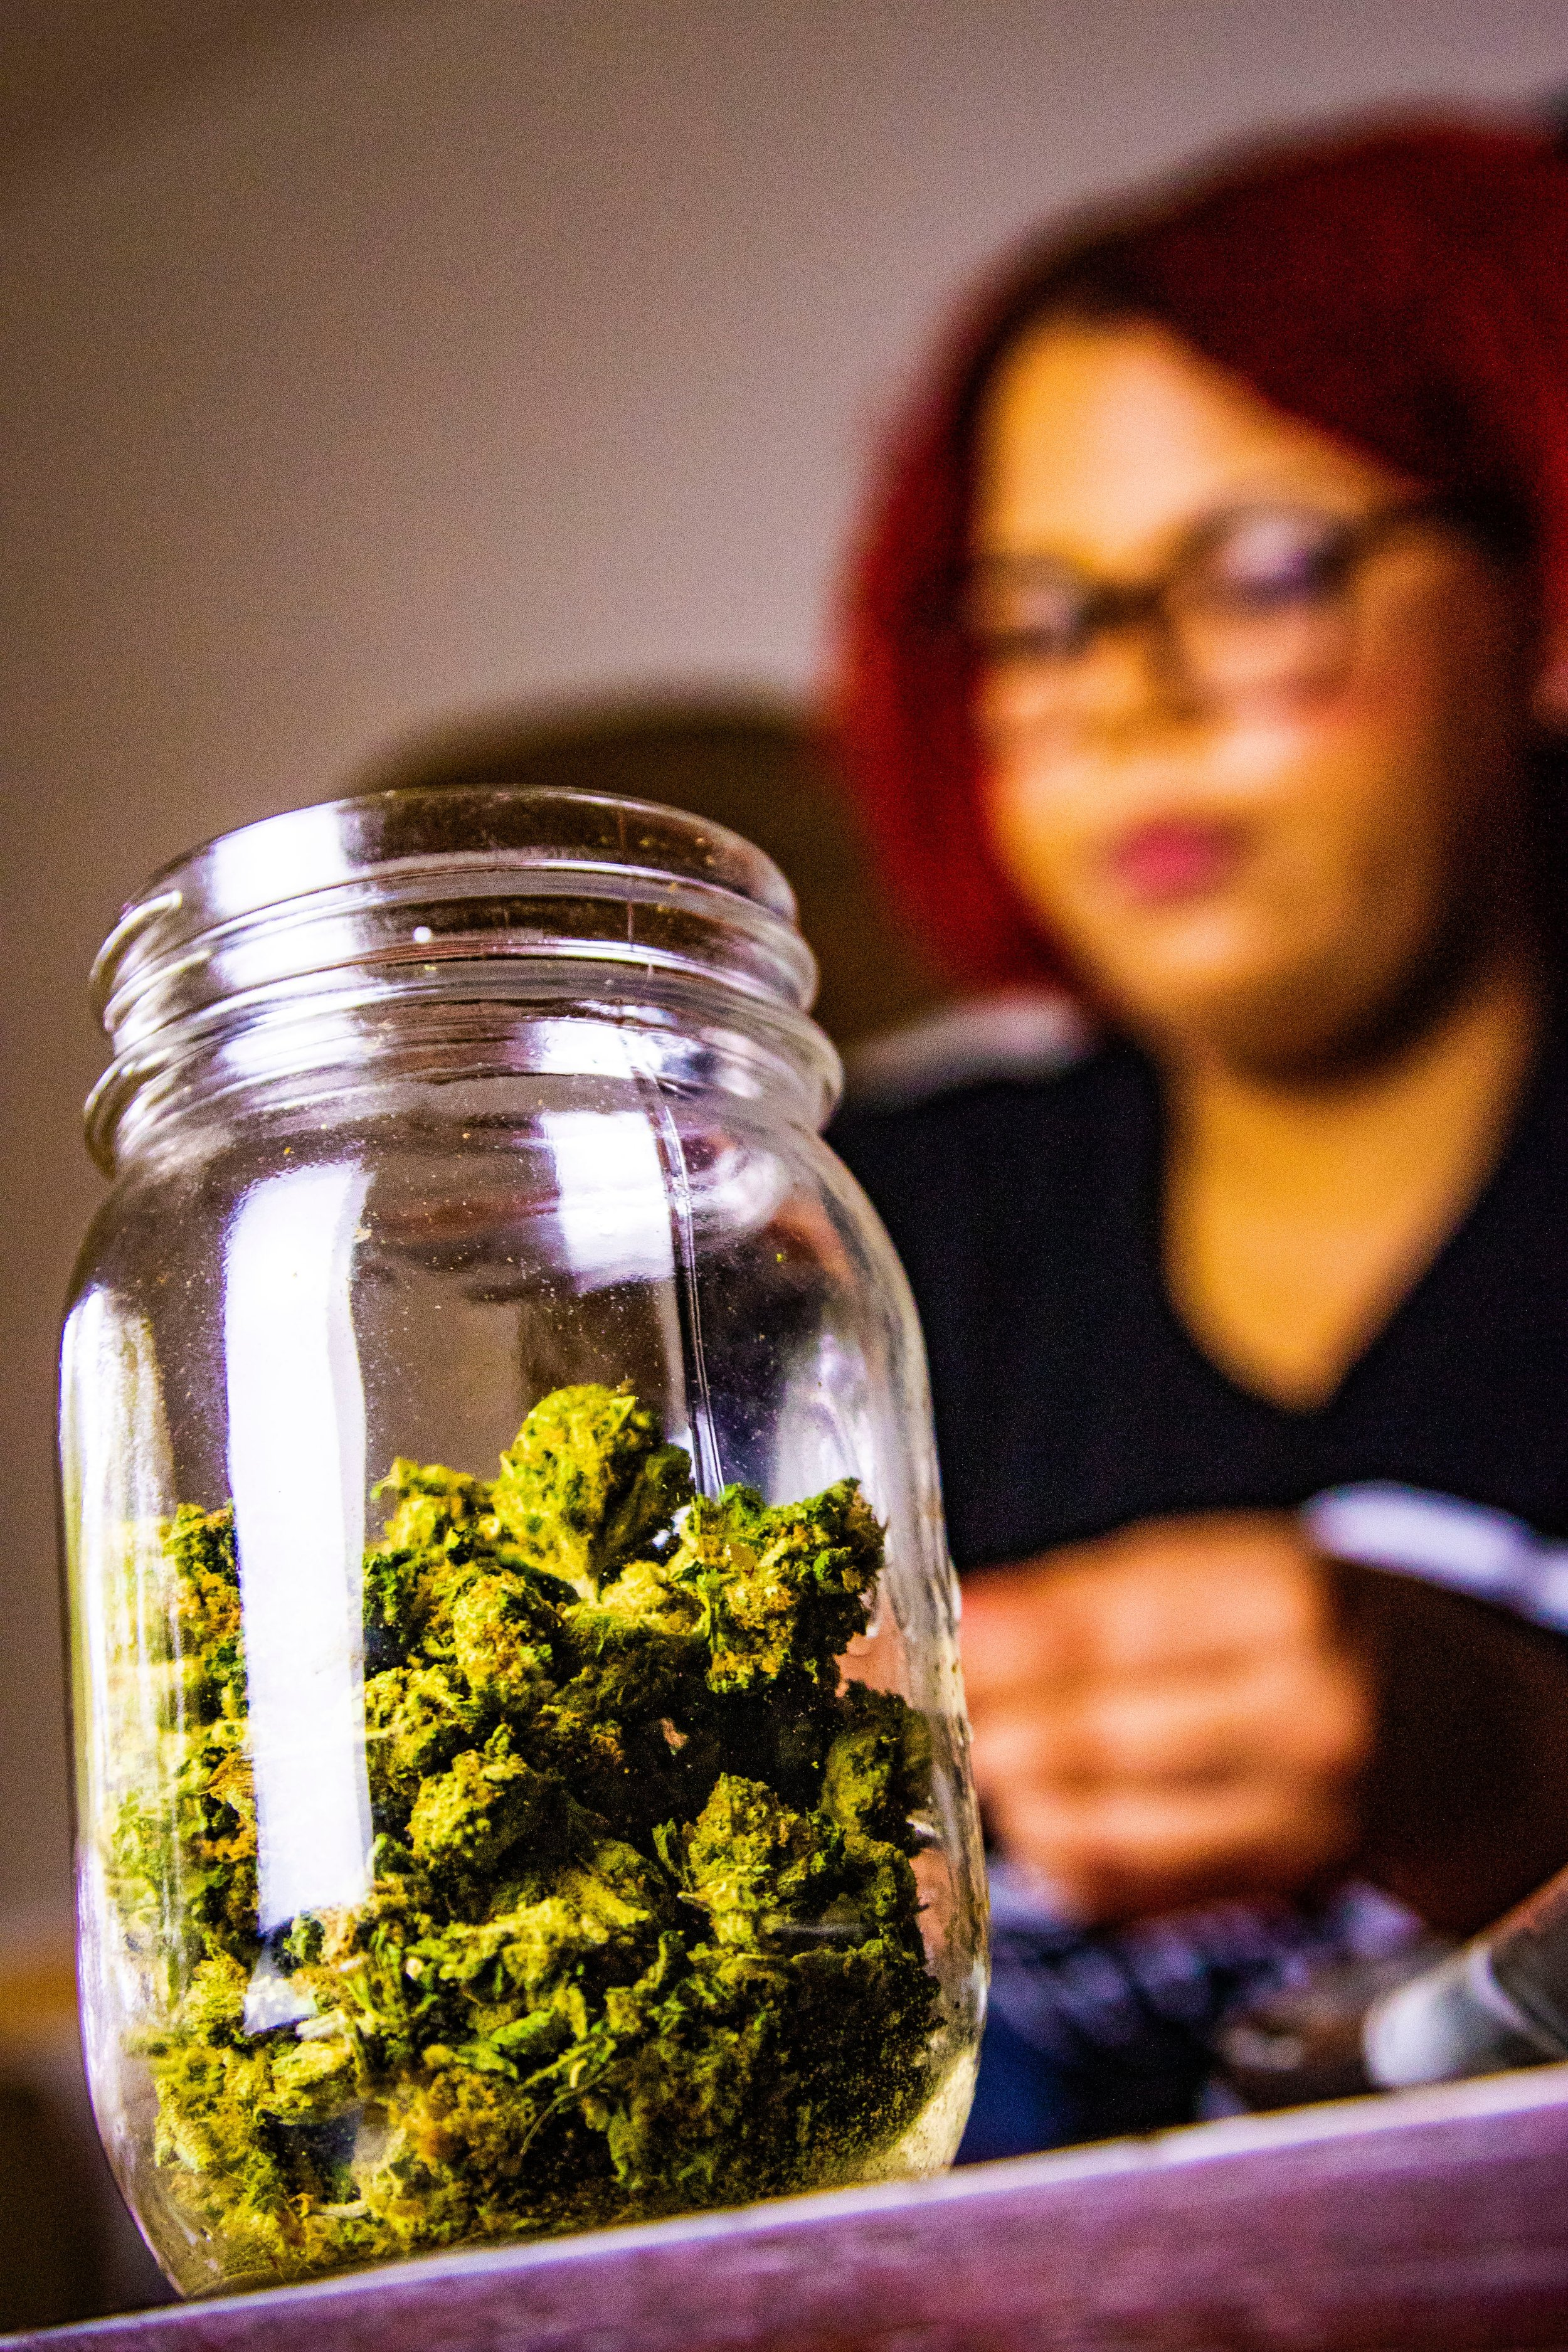 A jar of cannabis in the foreground with a woman in the background.